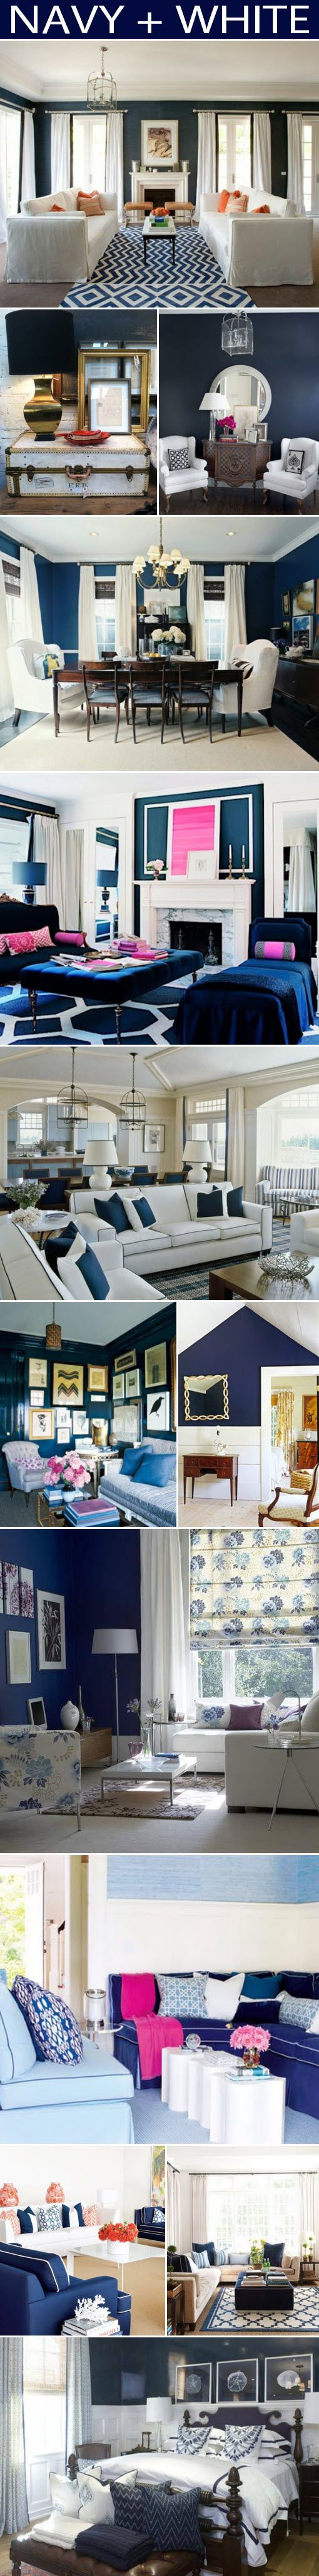 Navy and white colour scheme, so mordern refreshing and beautiful!